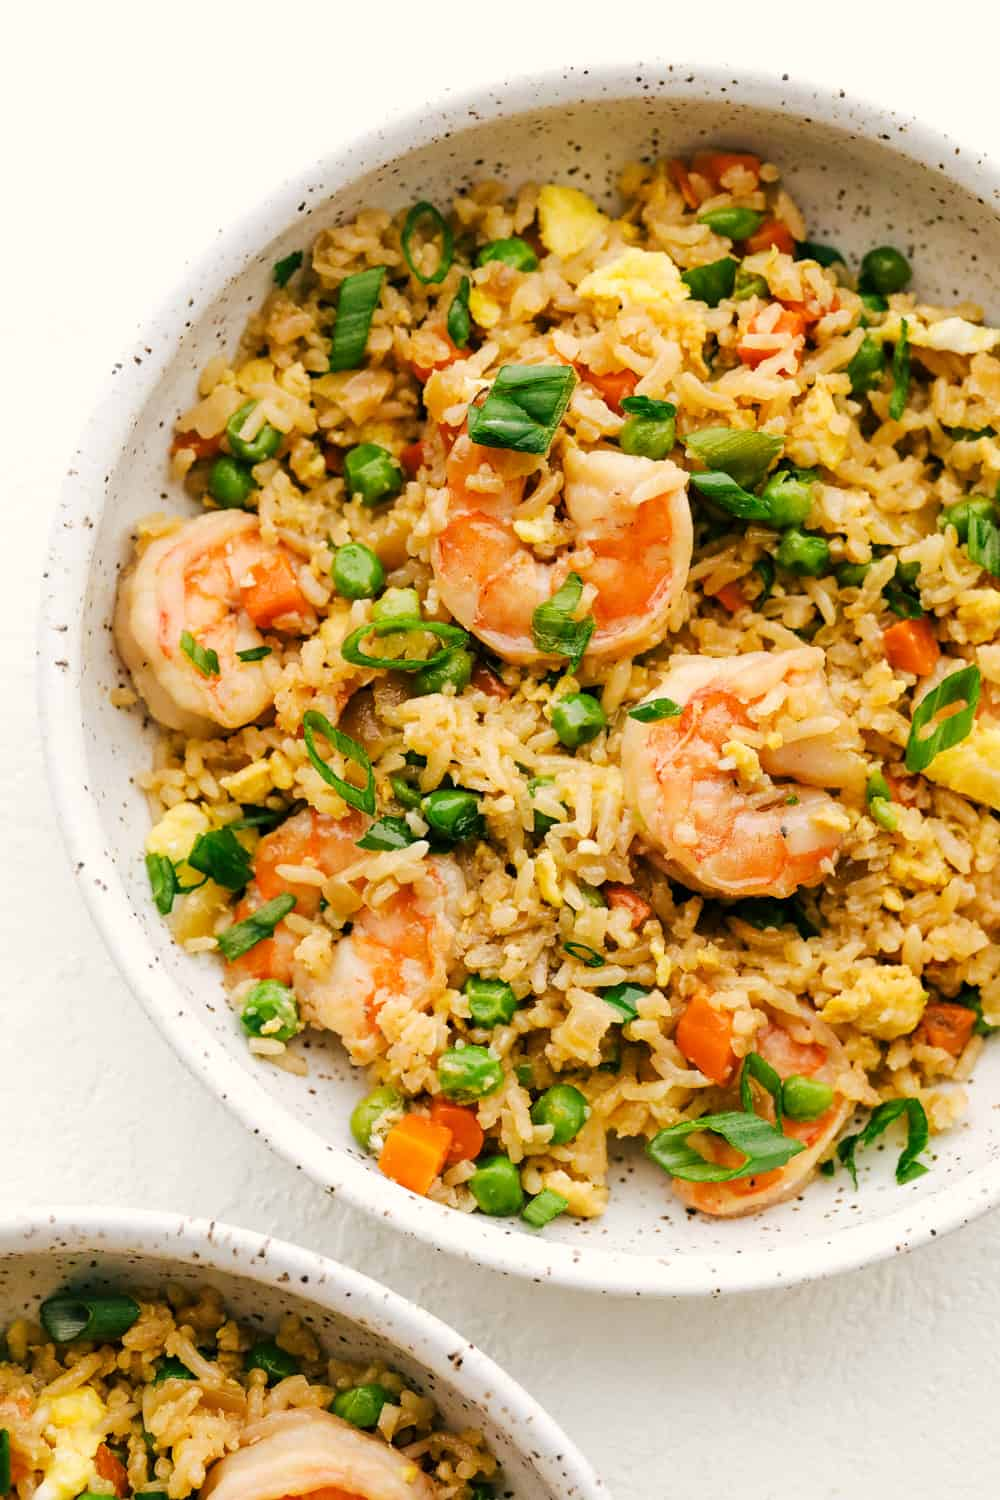 Shrimp fried rice in a bowl.